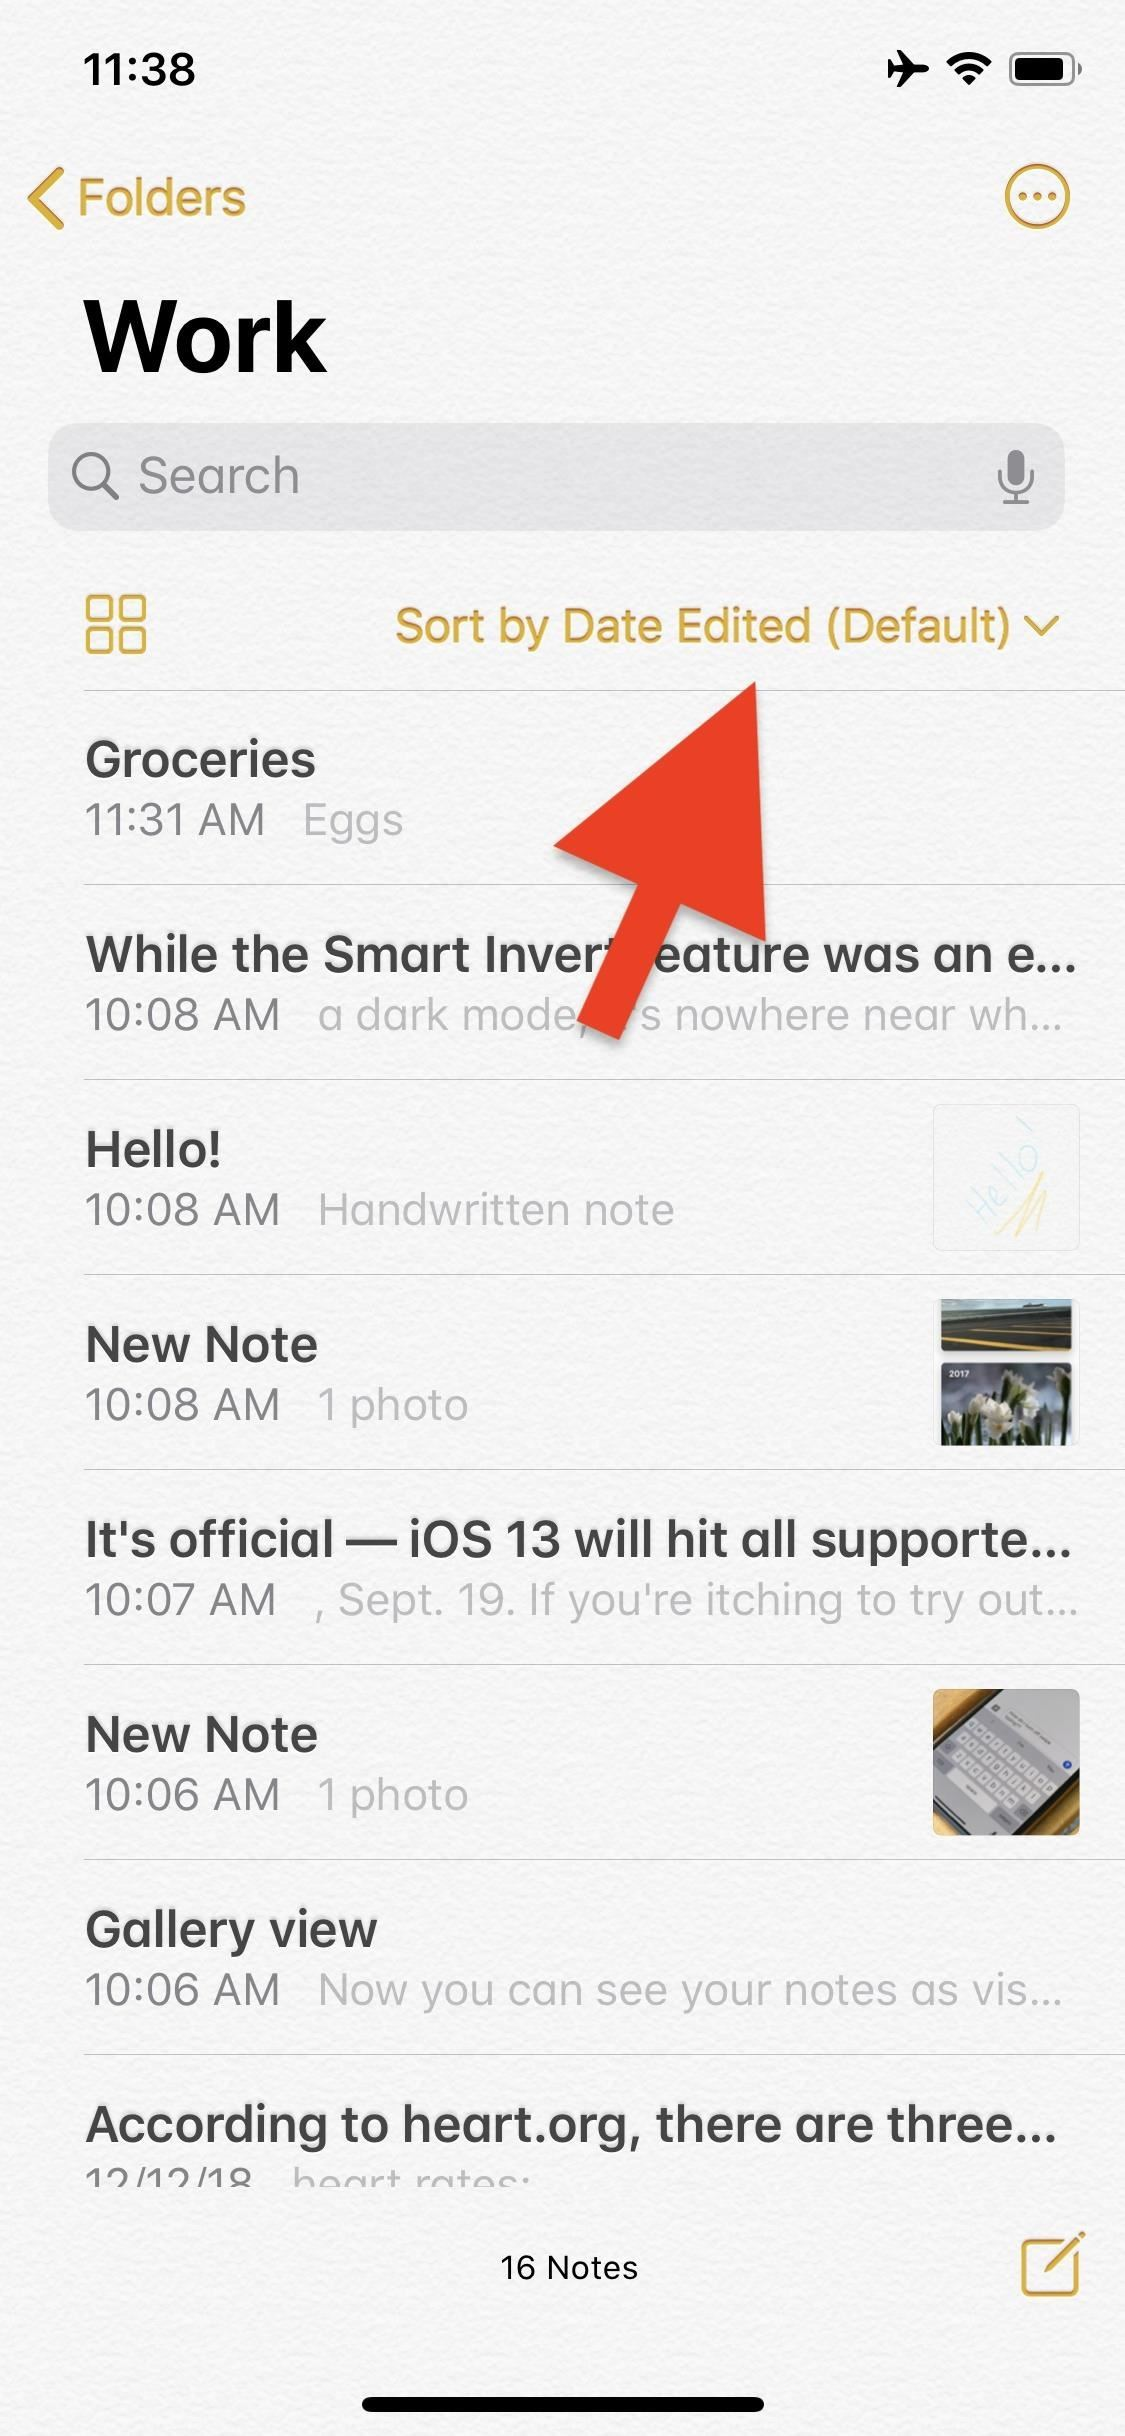 The Notes app for iOS 13 includes 15 cool new features and changes